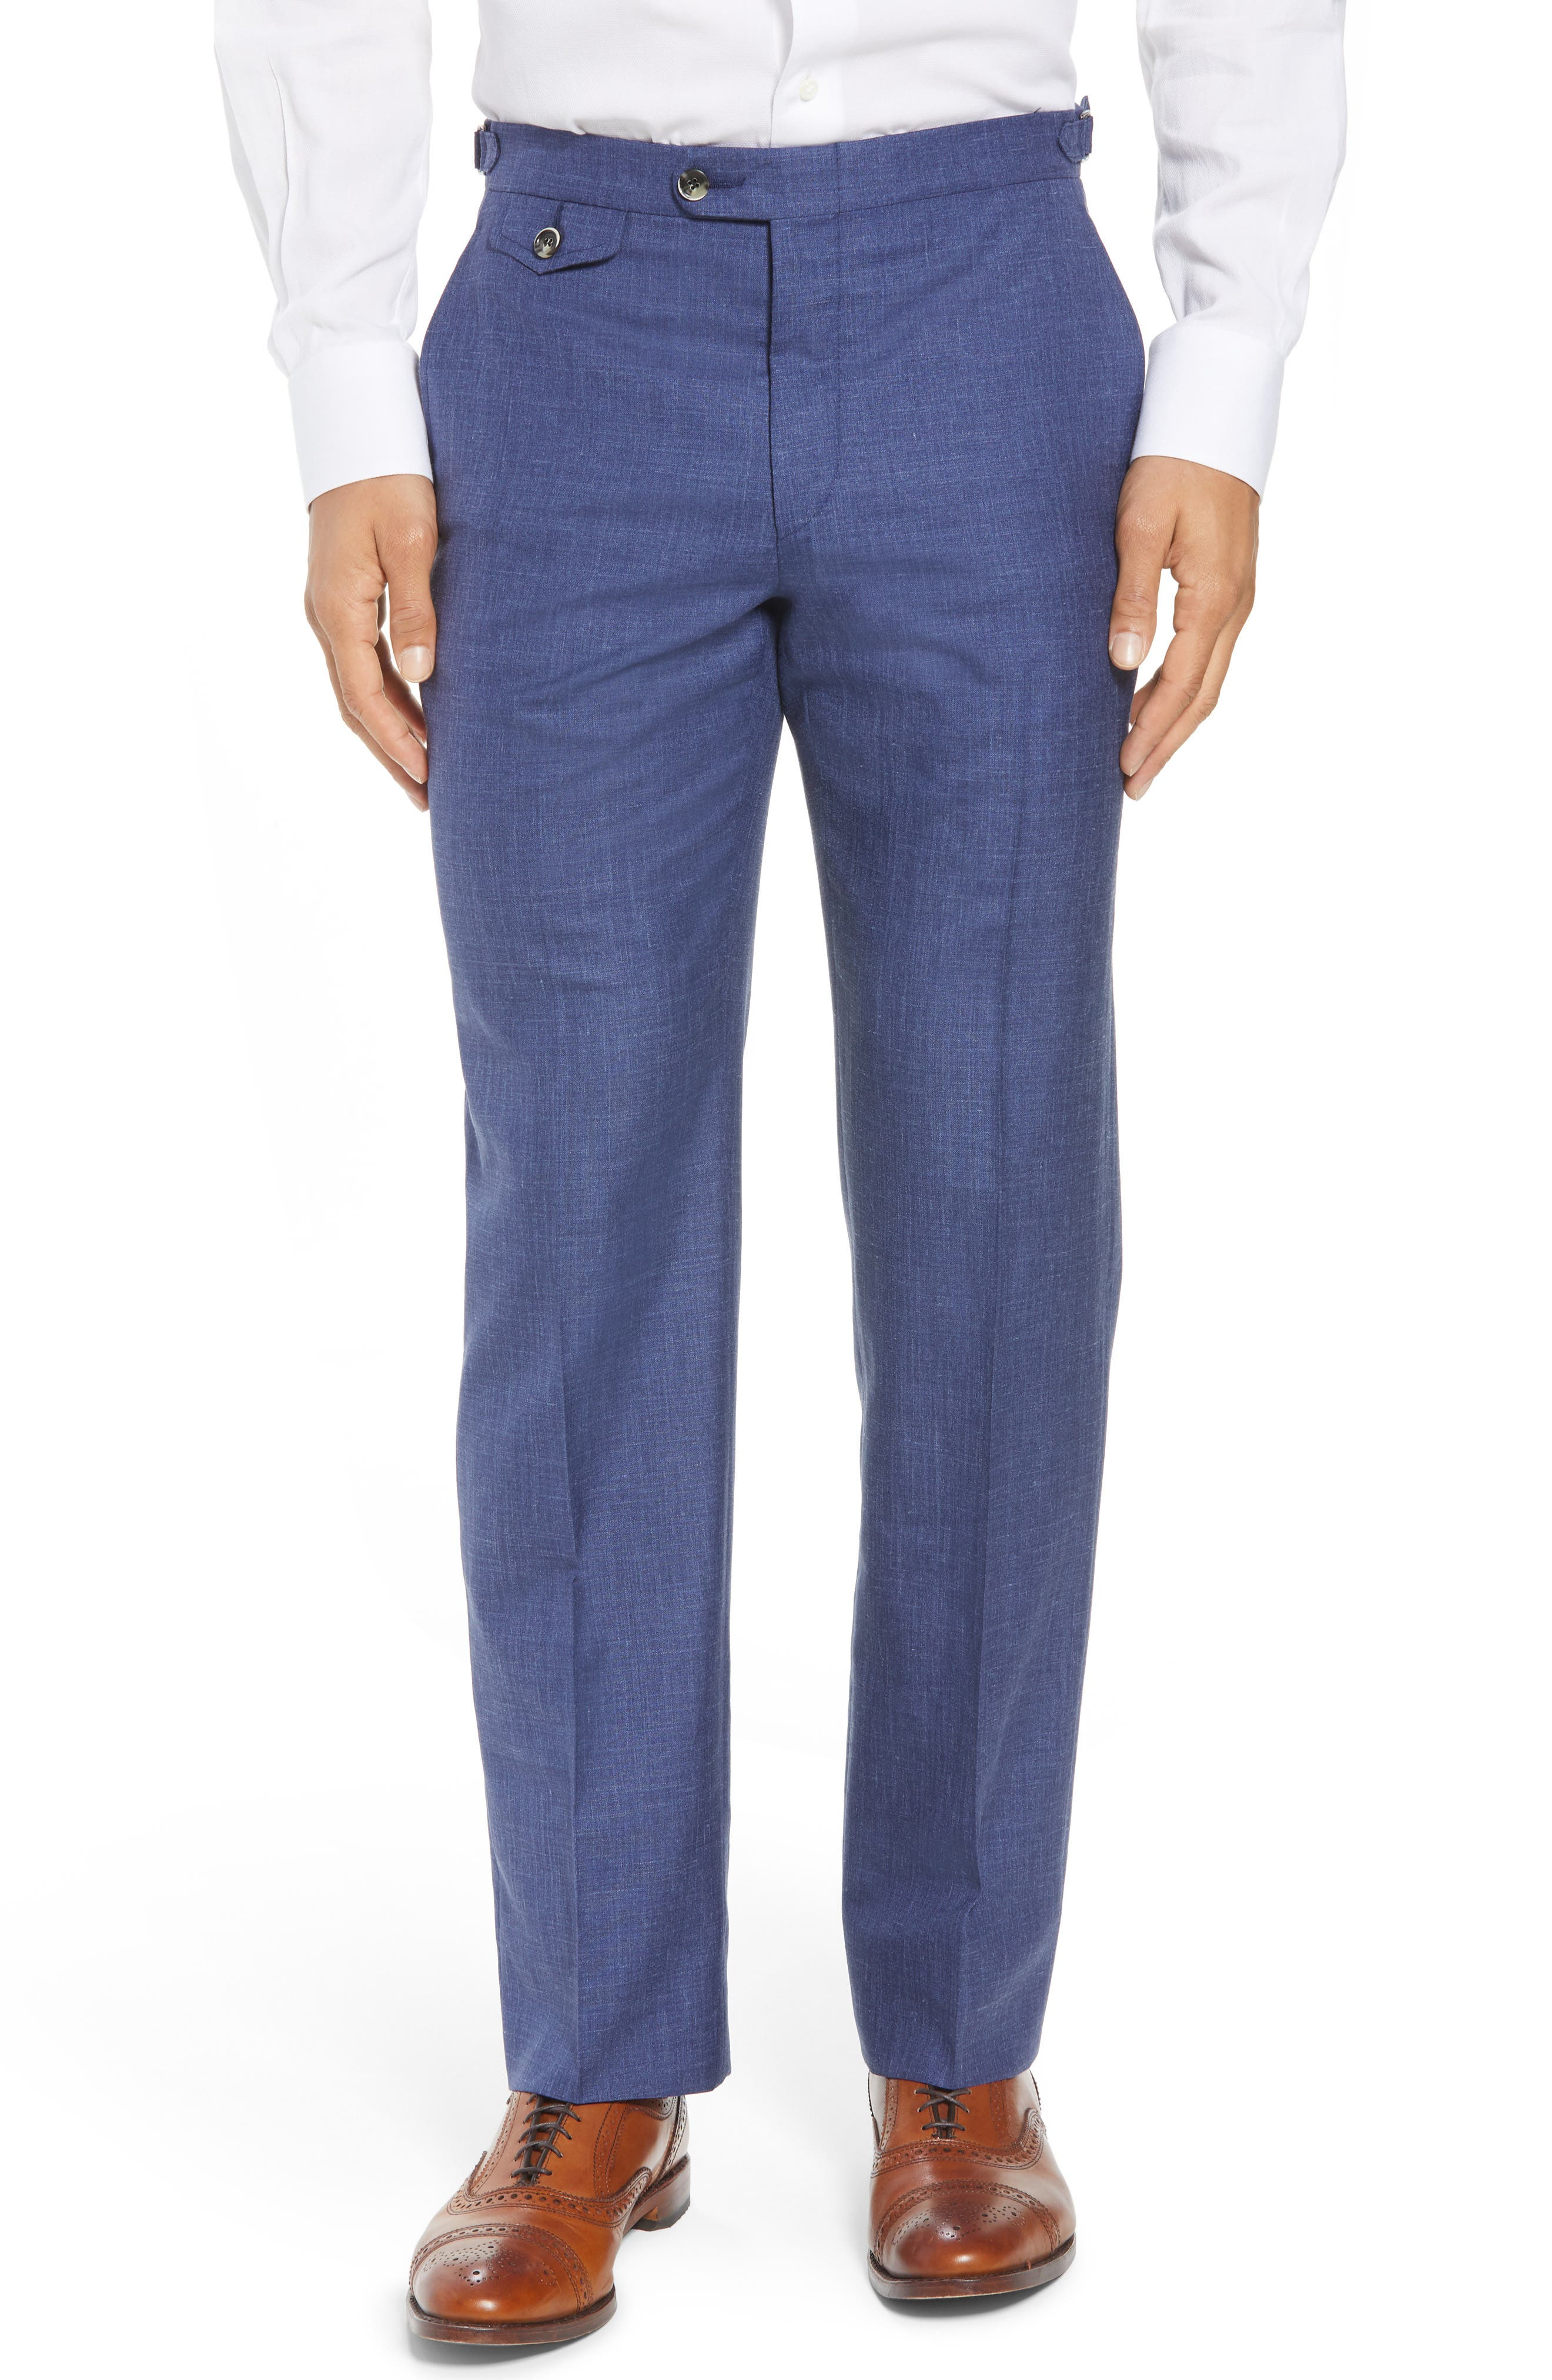 B Fit Flat Front Solid Wool Blend Trousers,                         Main,                         color, Blue Solid